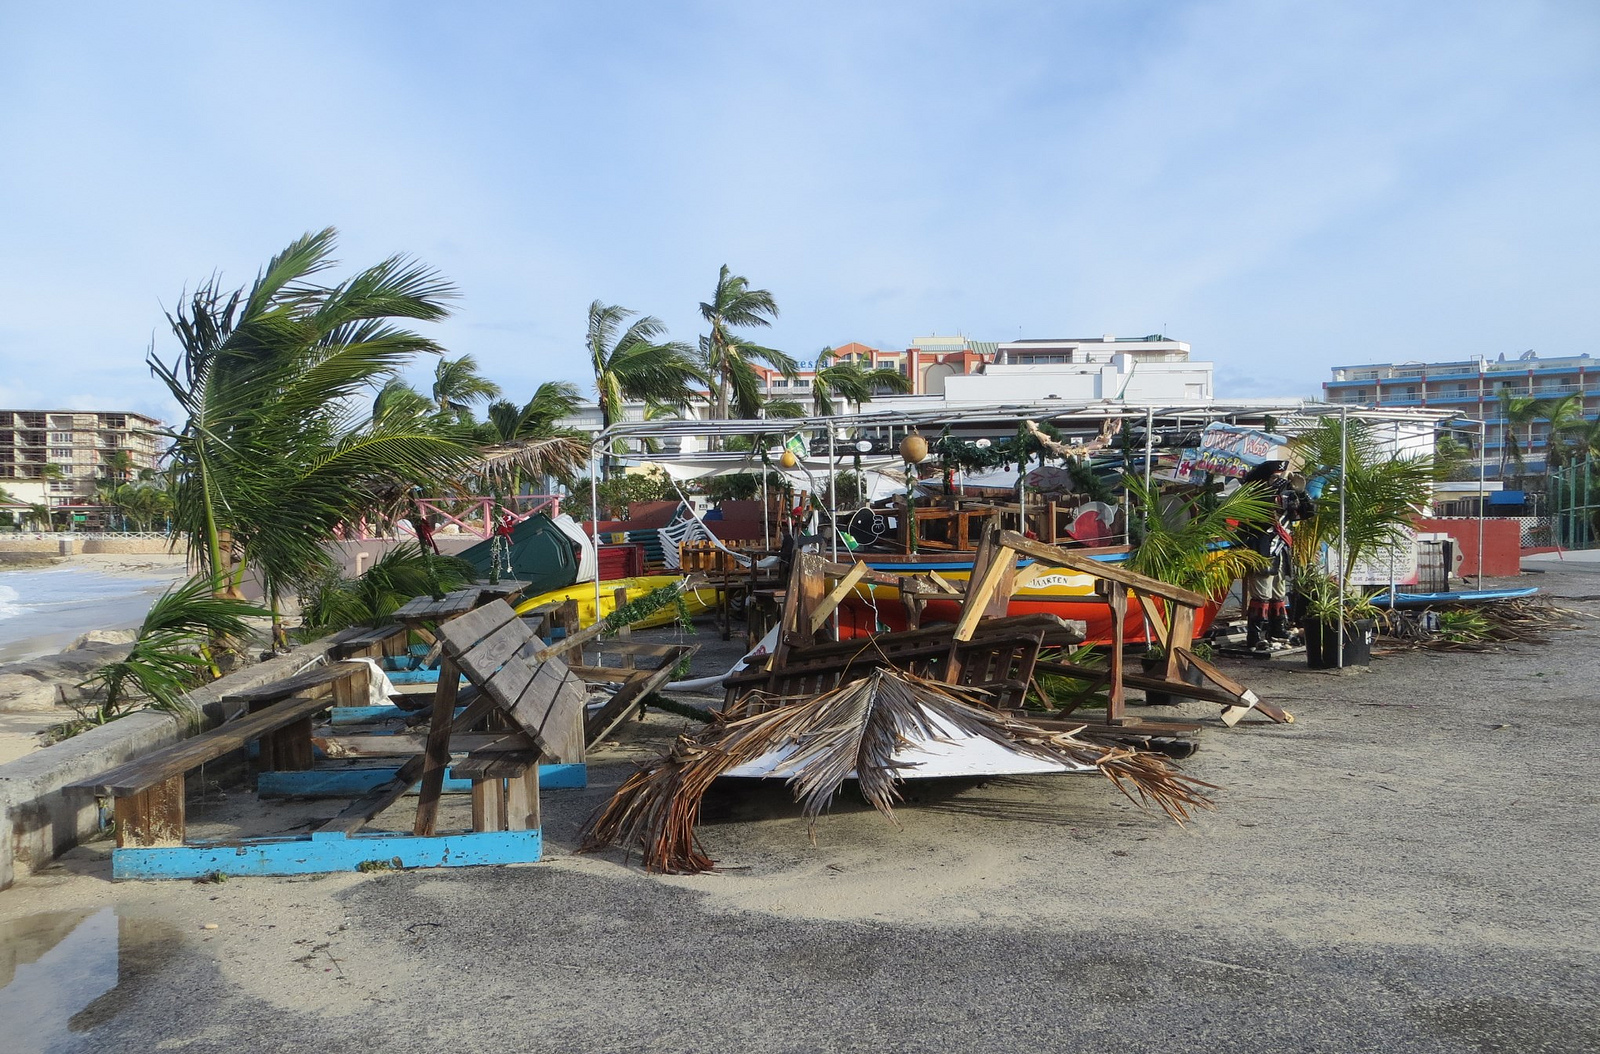 Hd Tropical Island Beach Paradise Wallpapers And Backgrounds: St. Maarten Beach Bars Continue Recovery From Gonzalo